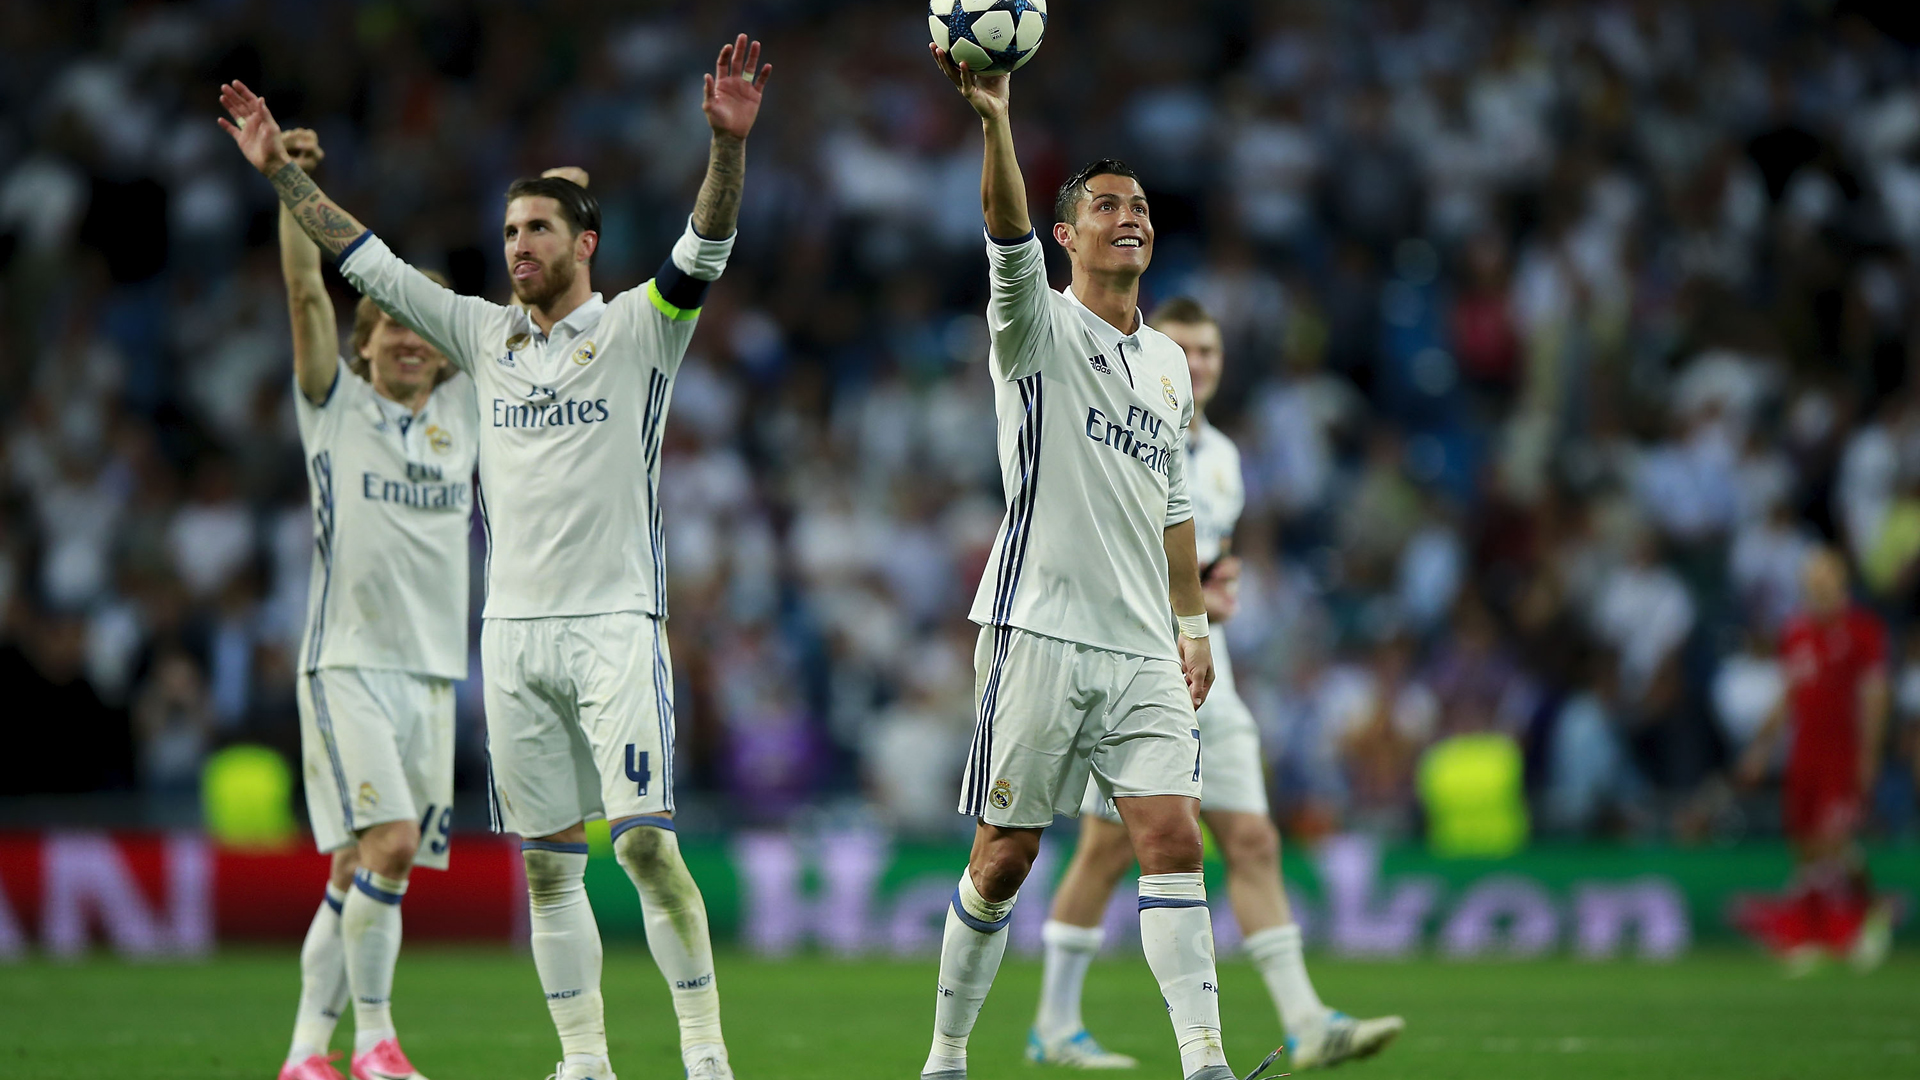 'Referee Had A Bad Game', Bayern Rages After Loss To Real Madrid